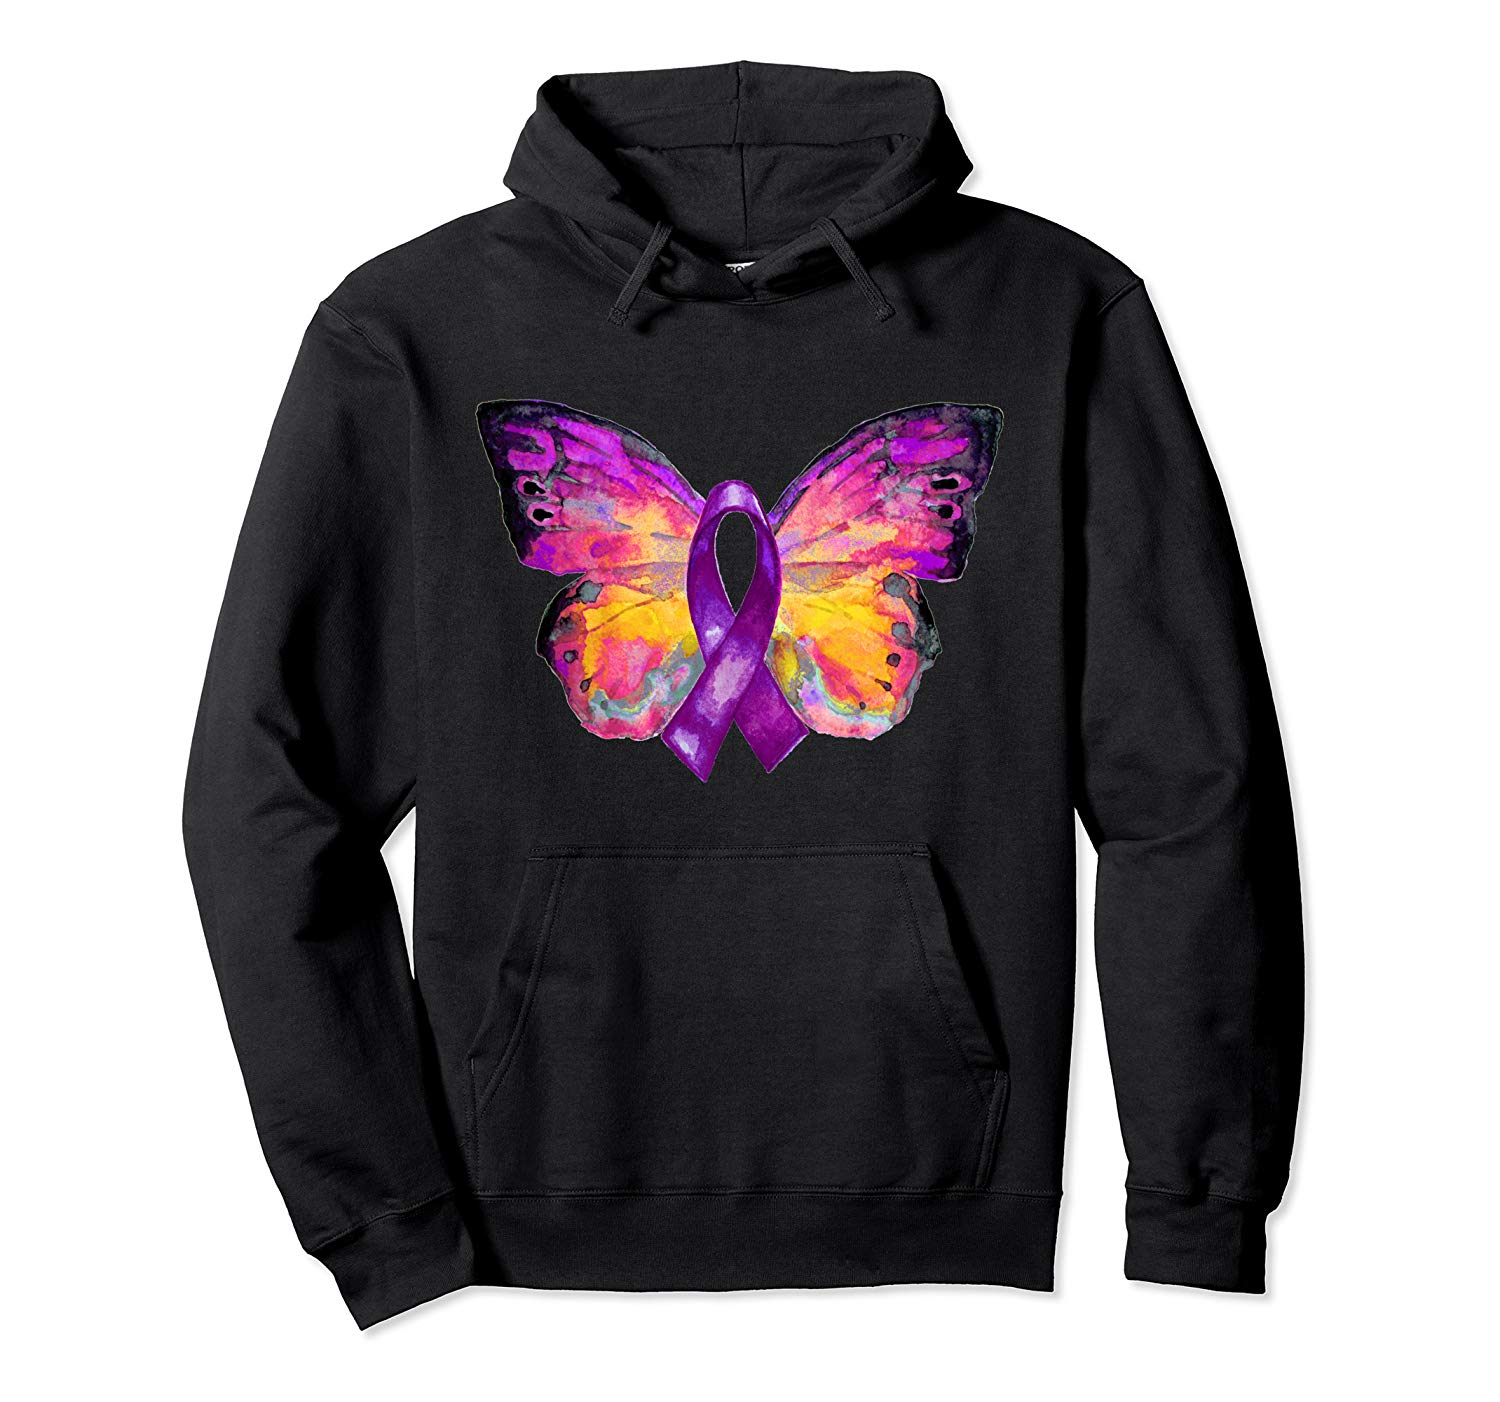 Purple Ribbon Butterfly Overdose Awareness Pullover Hoo